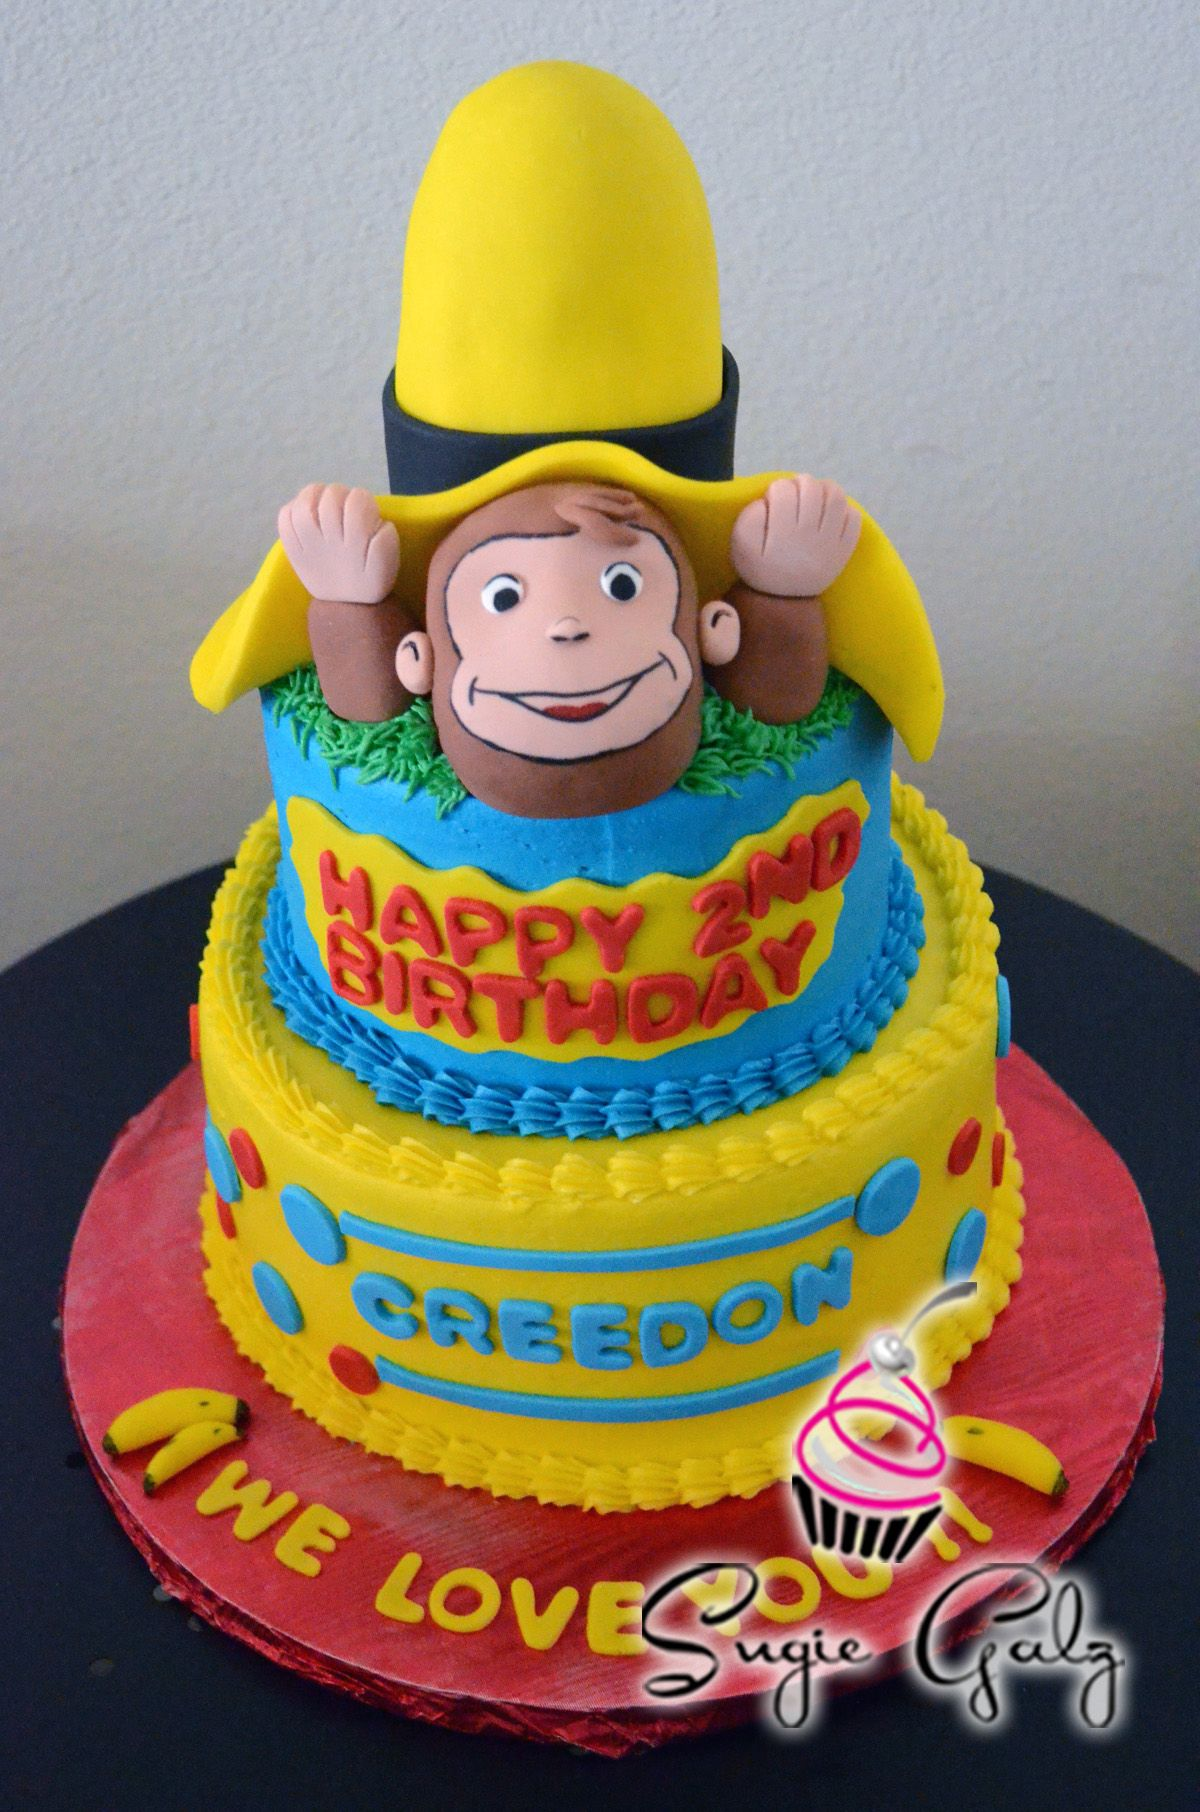 Curious George Birthday Cake By SugieGalz In Austin Texas